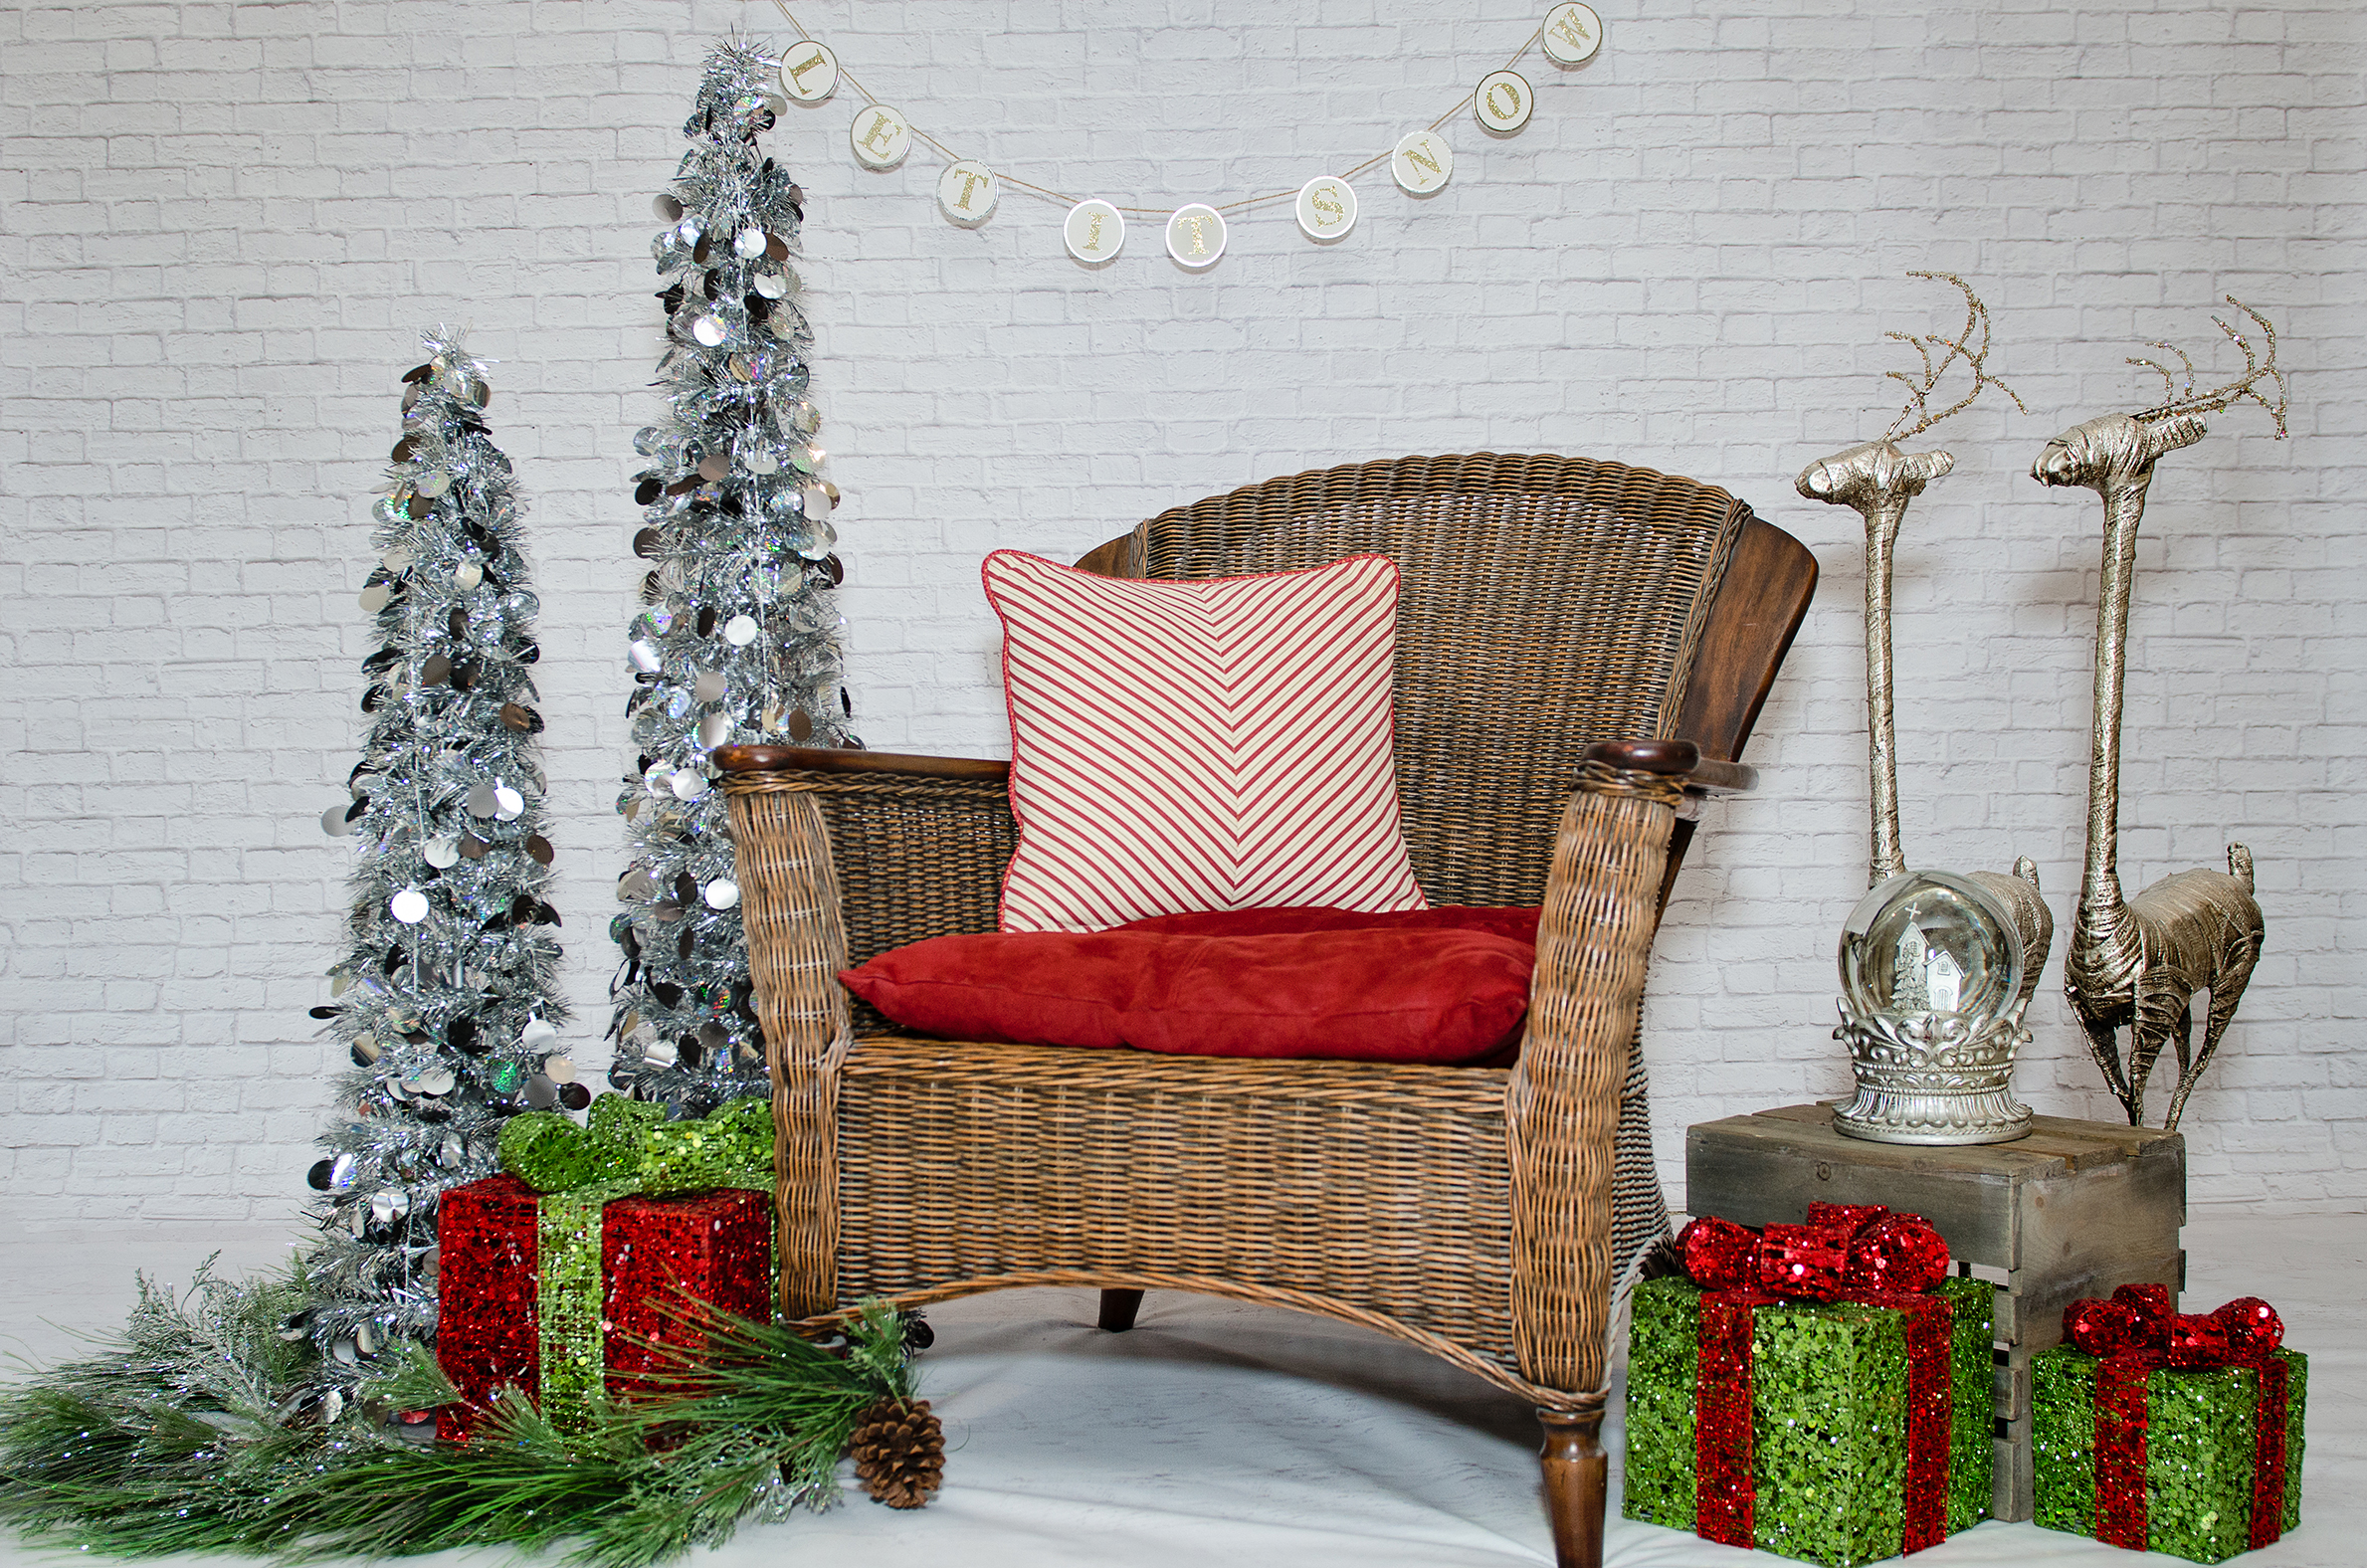 Christmas Set-1 reduced.jpg